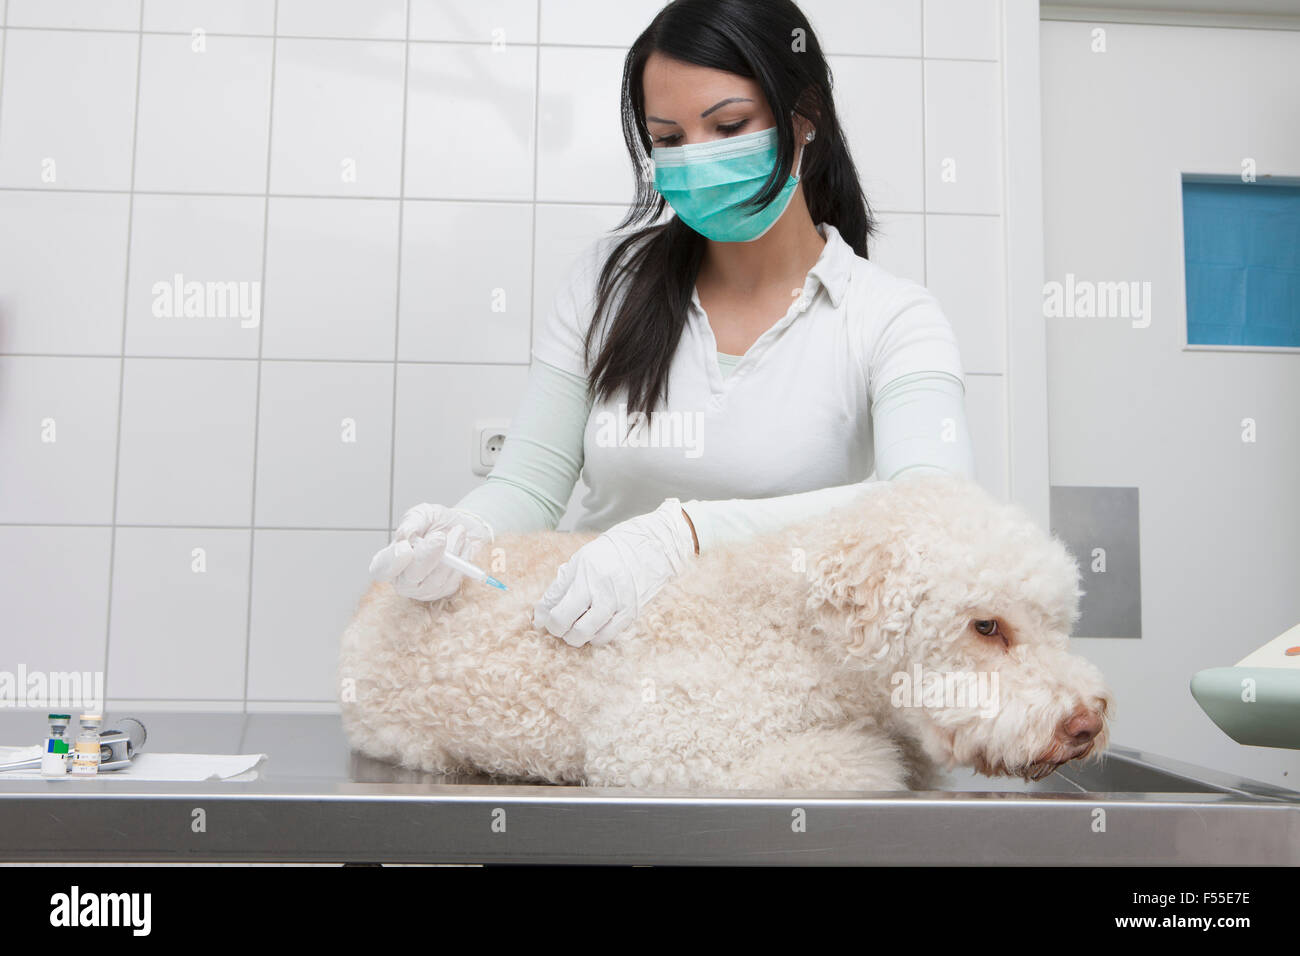 Female veterinarian injecting dog in medical clinic - Stock Image